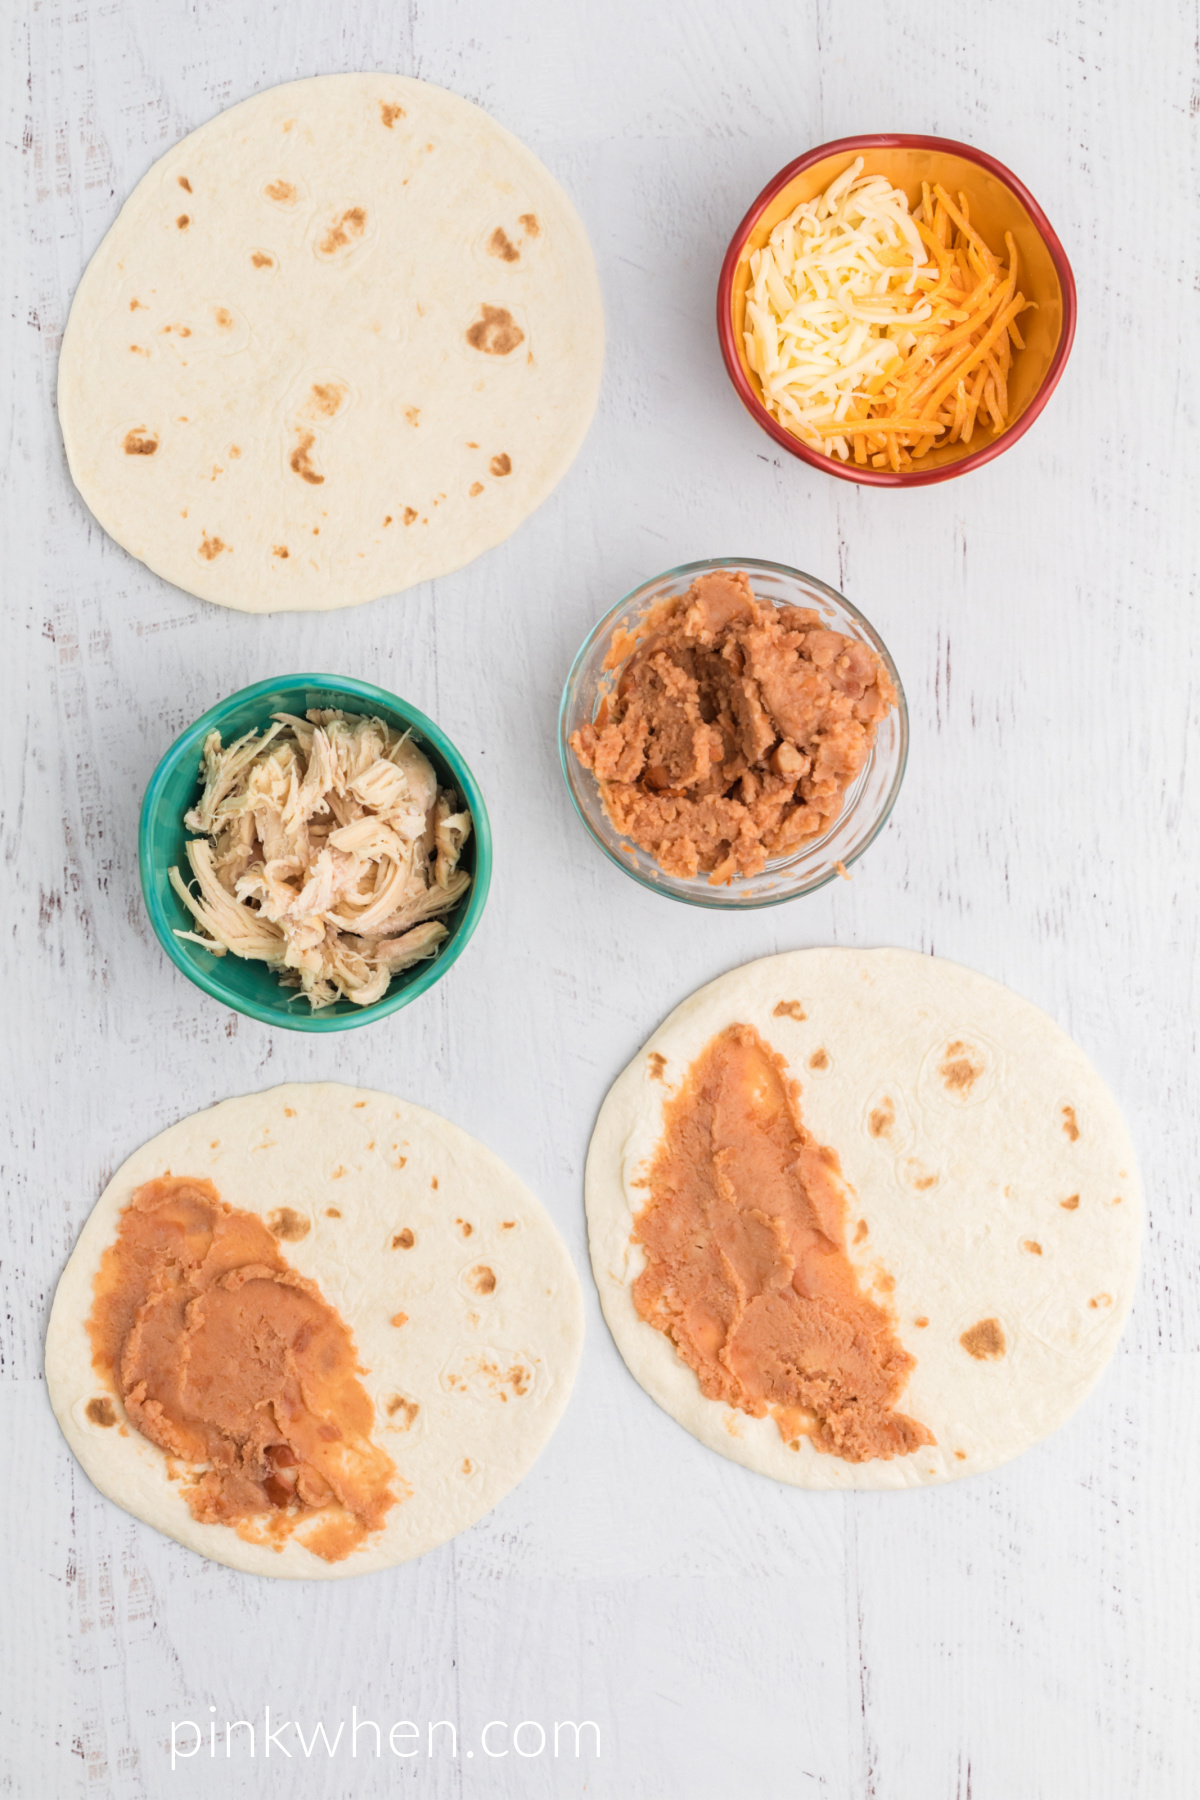 Air Fryer Quesadillas with refried beans on one side.